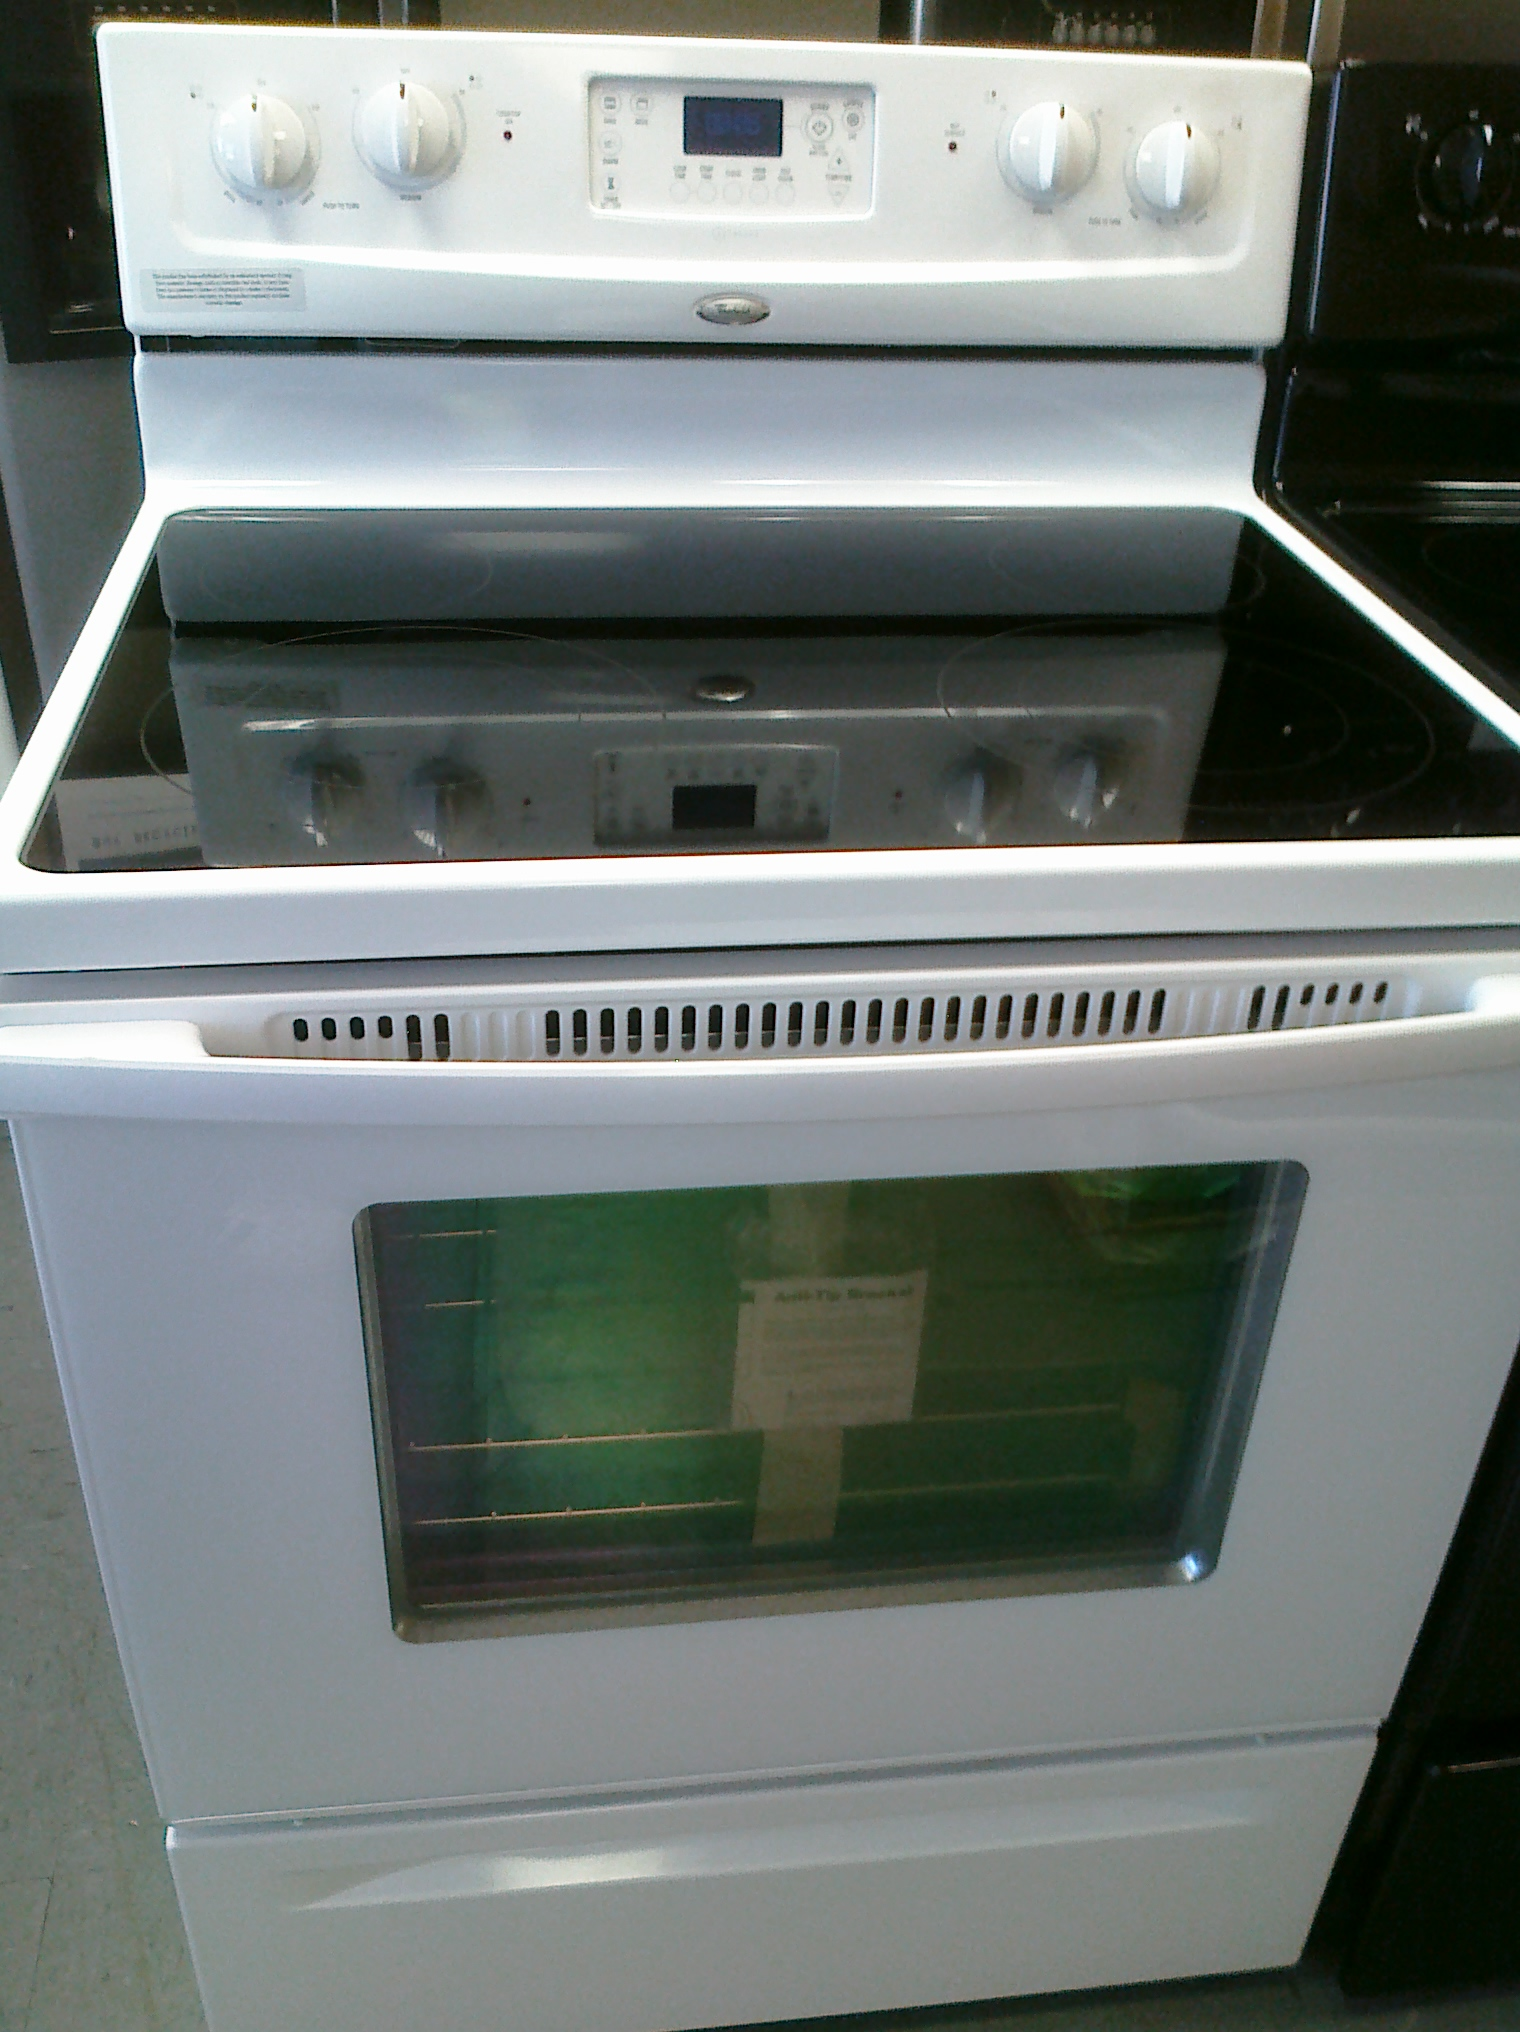 9 Whirlpool Wfe364lvq 30 Inch Smooth Top Electric Self